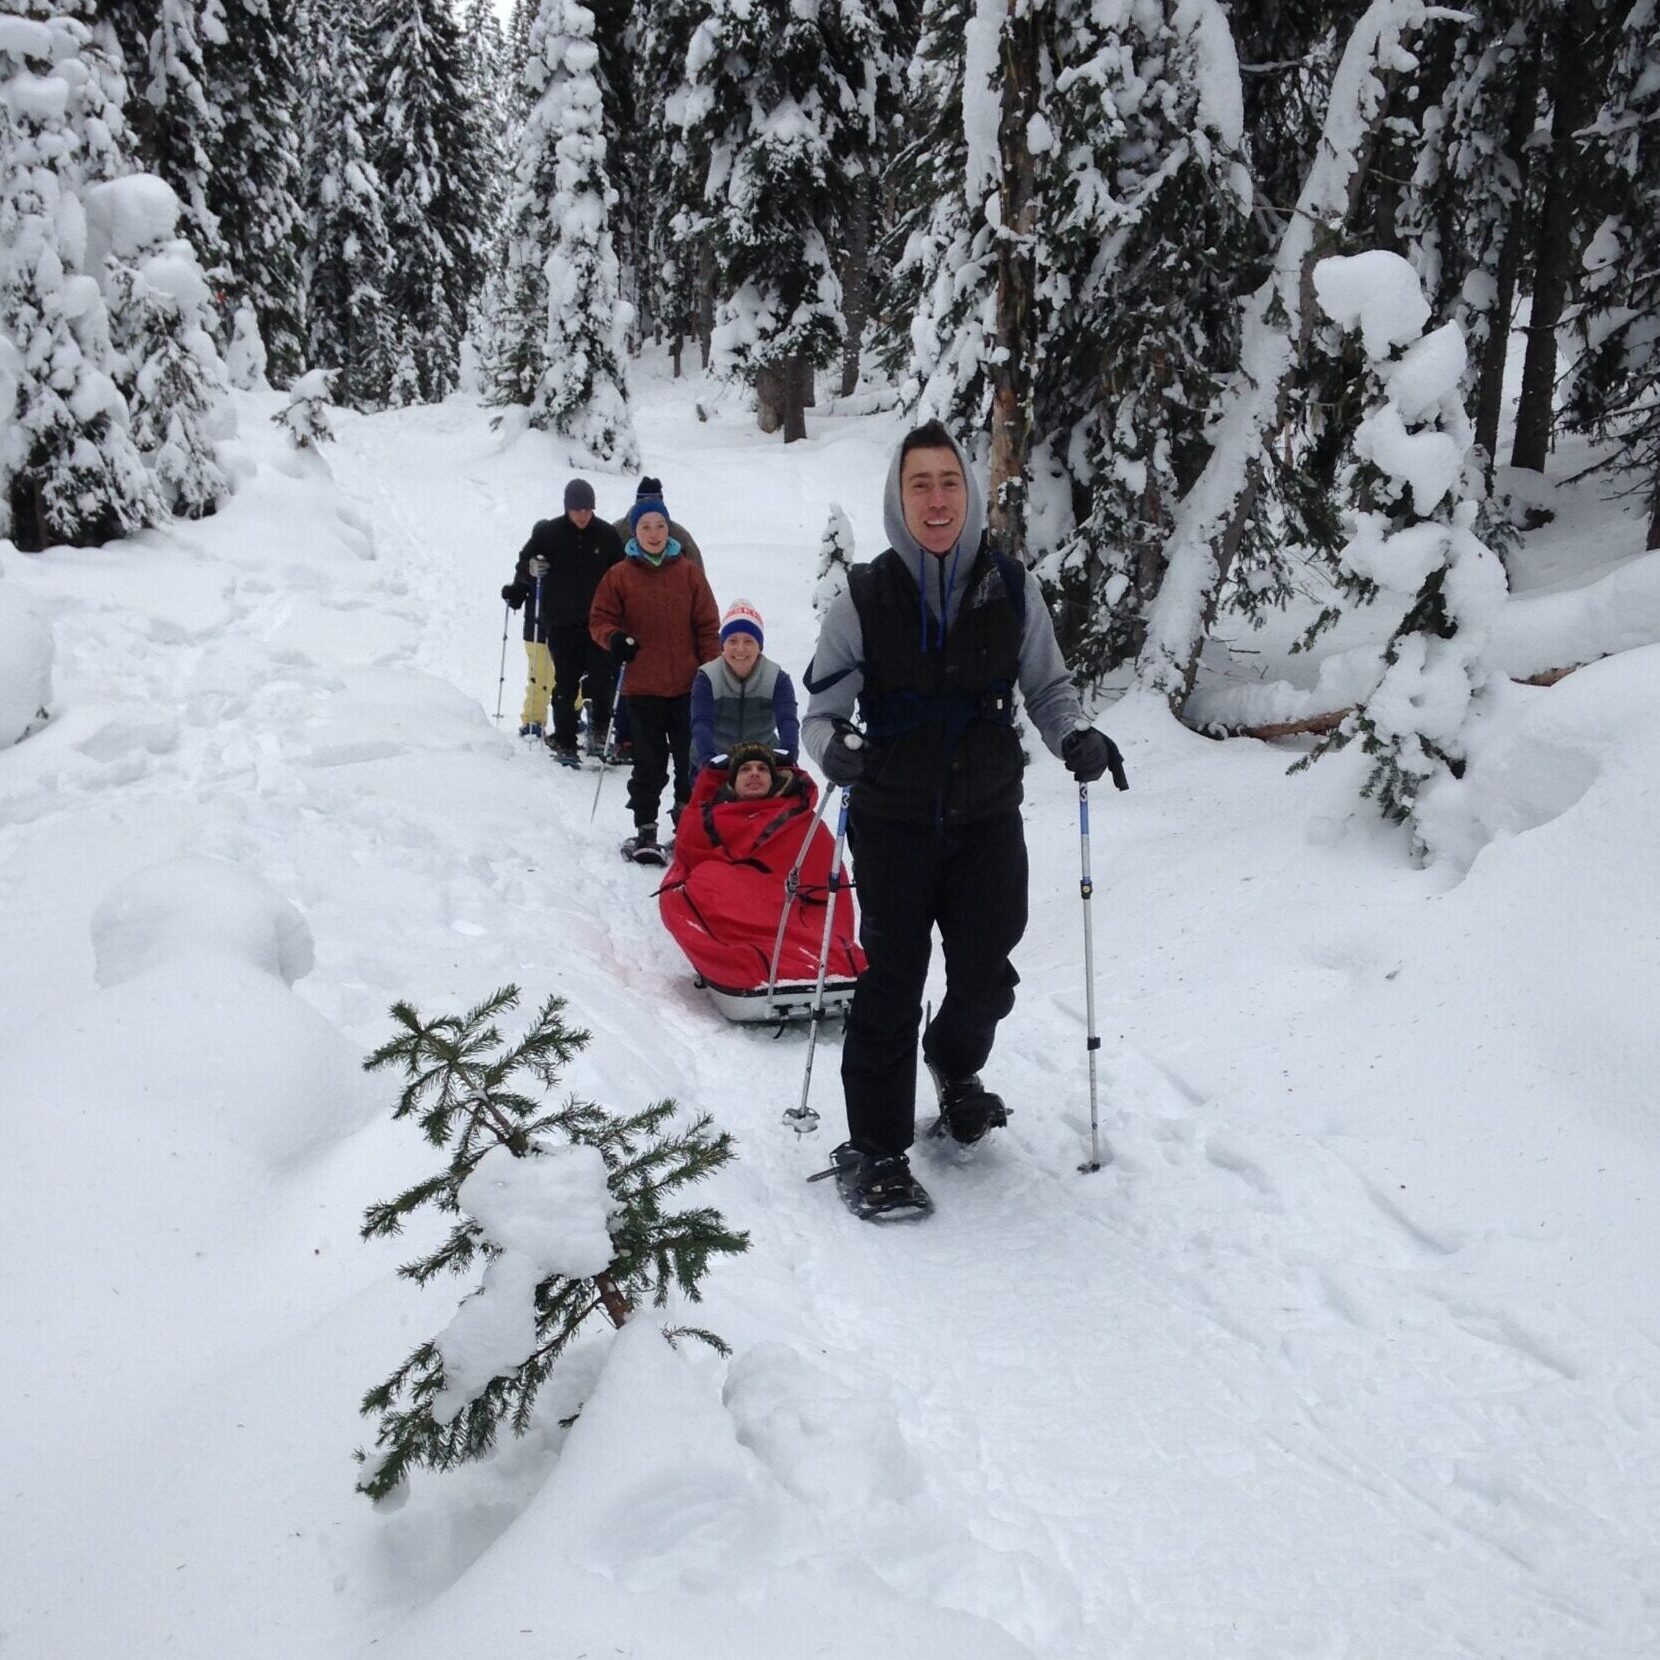 A group of snowshoers on a snow-covered trail in a snowy forest. In front is a man pulling a pulk - a red sled.